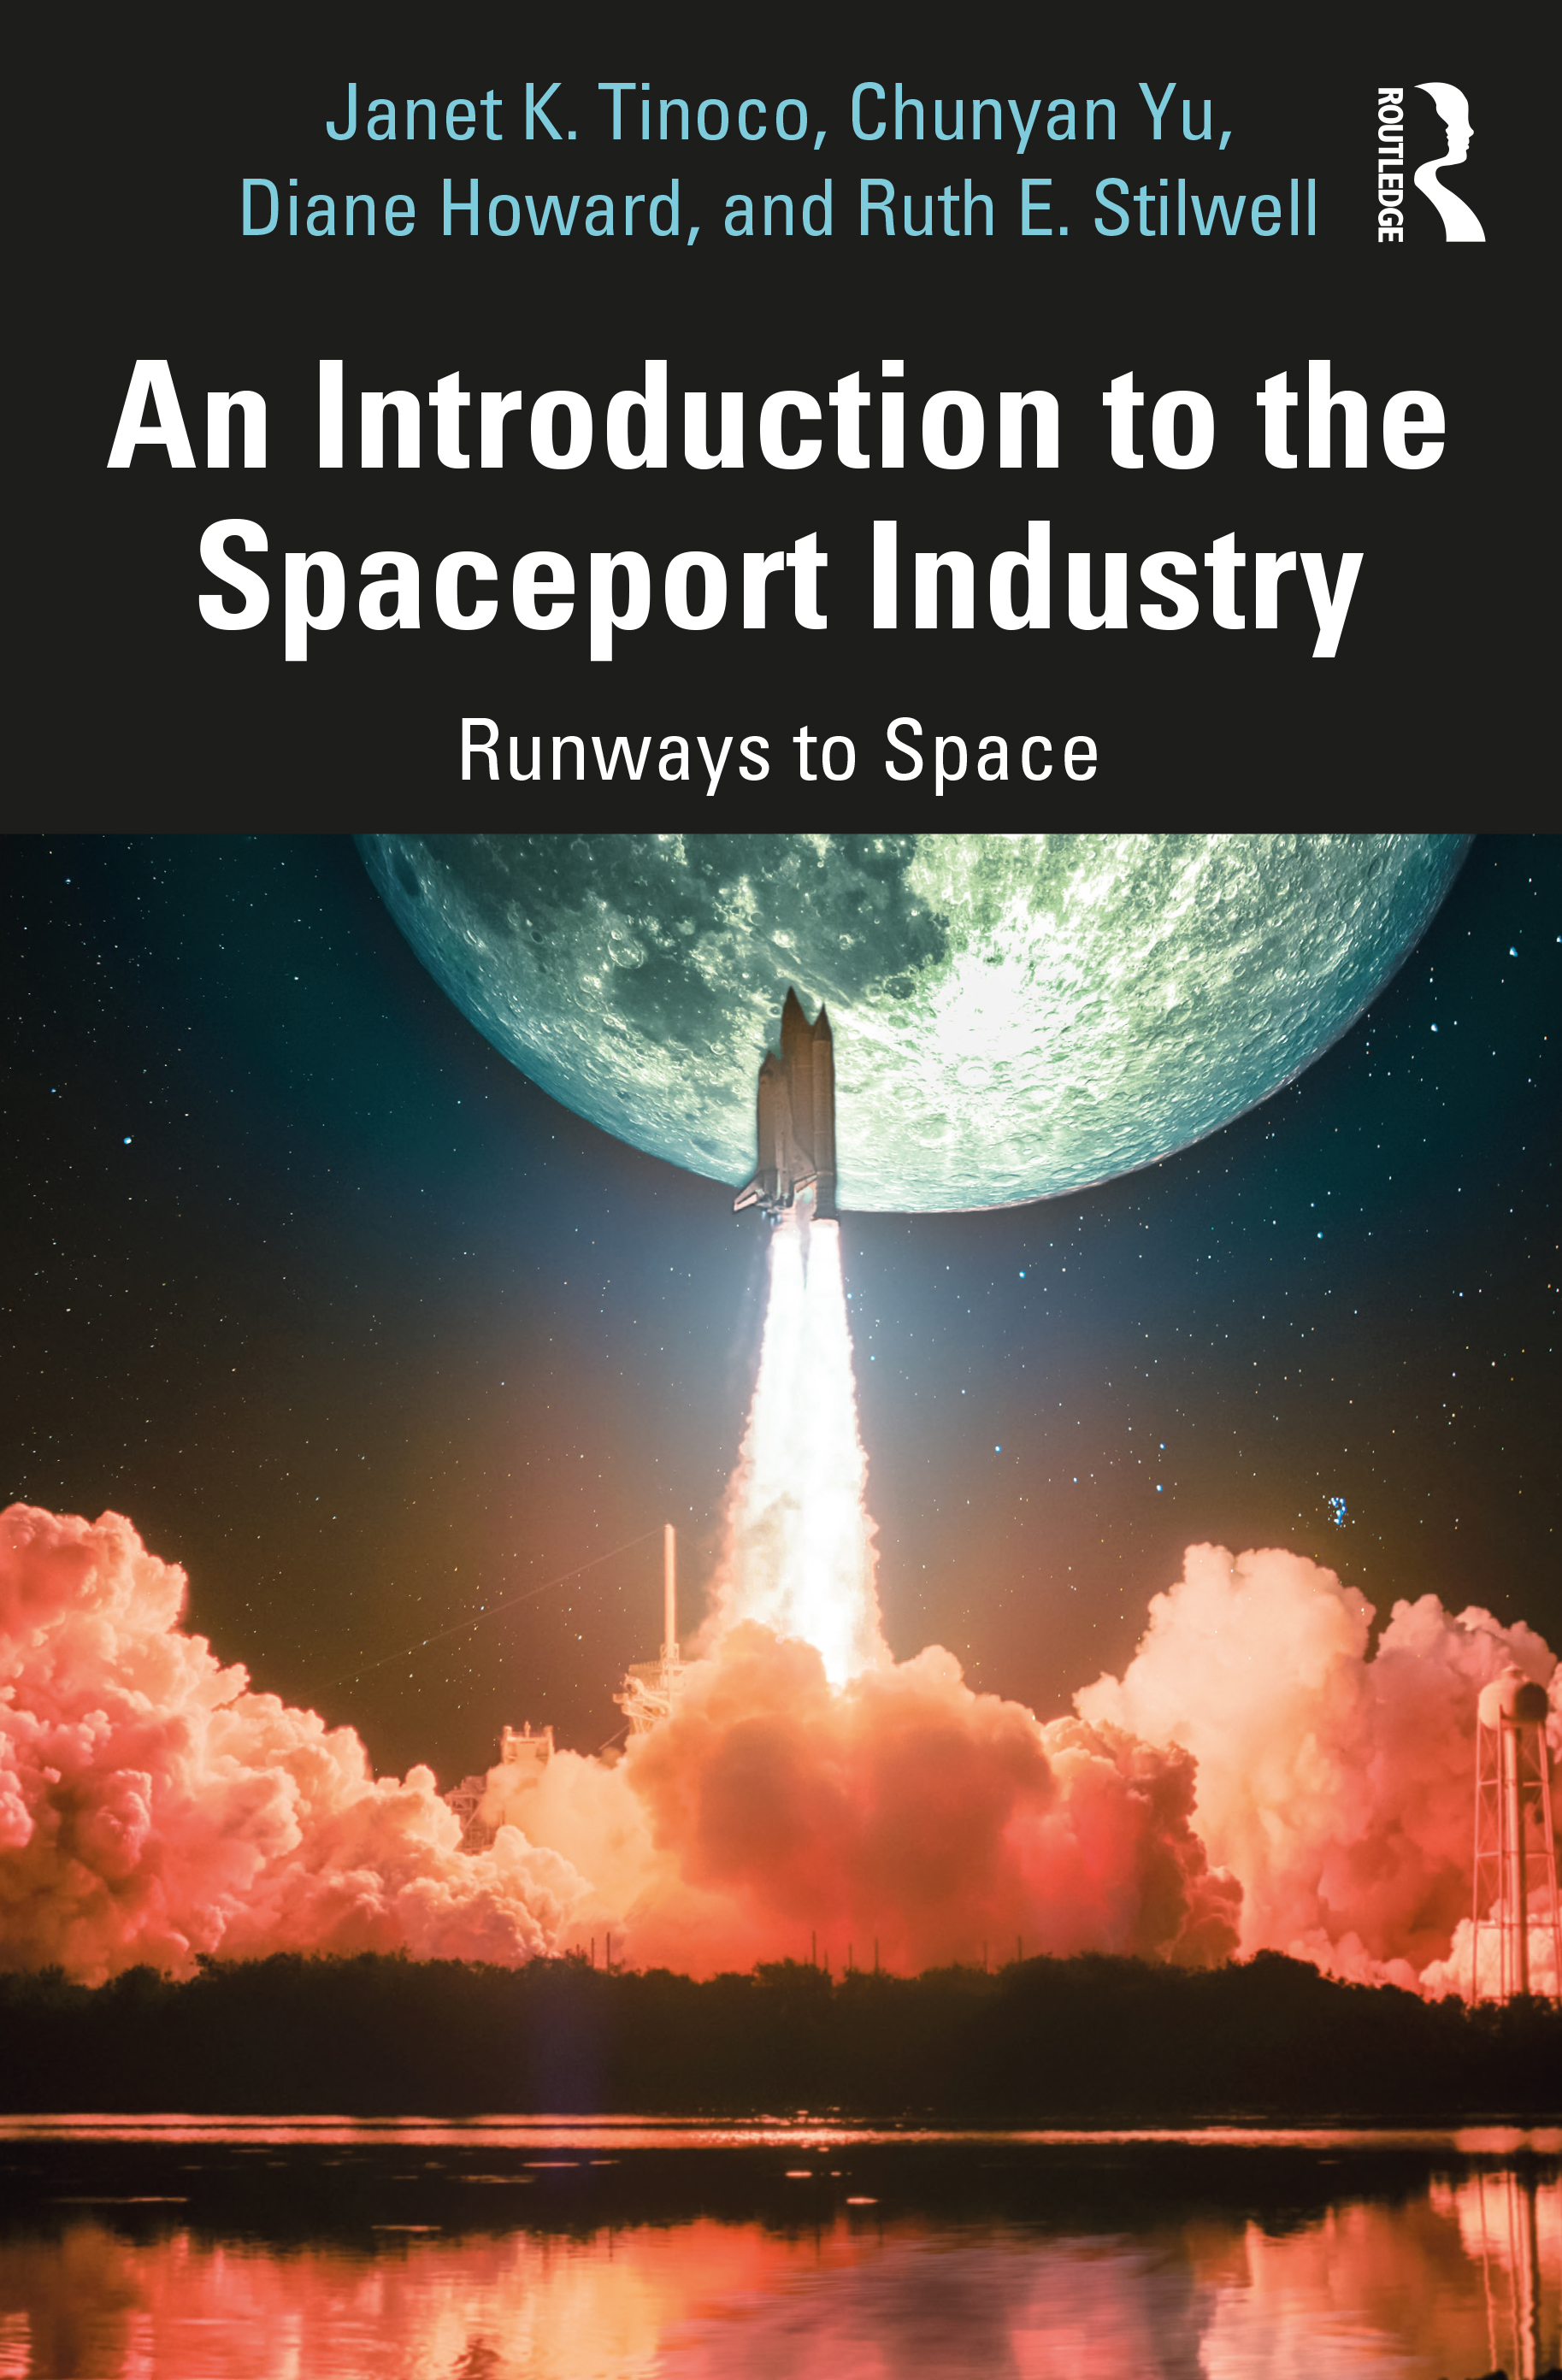 An Introduction to the Spaceport Industry: Runways to Space book cover